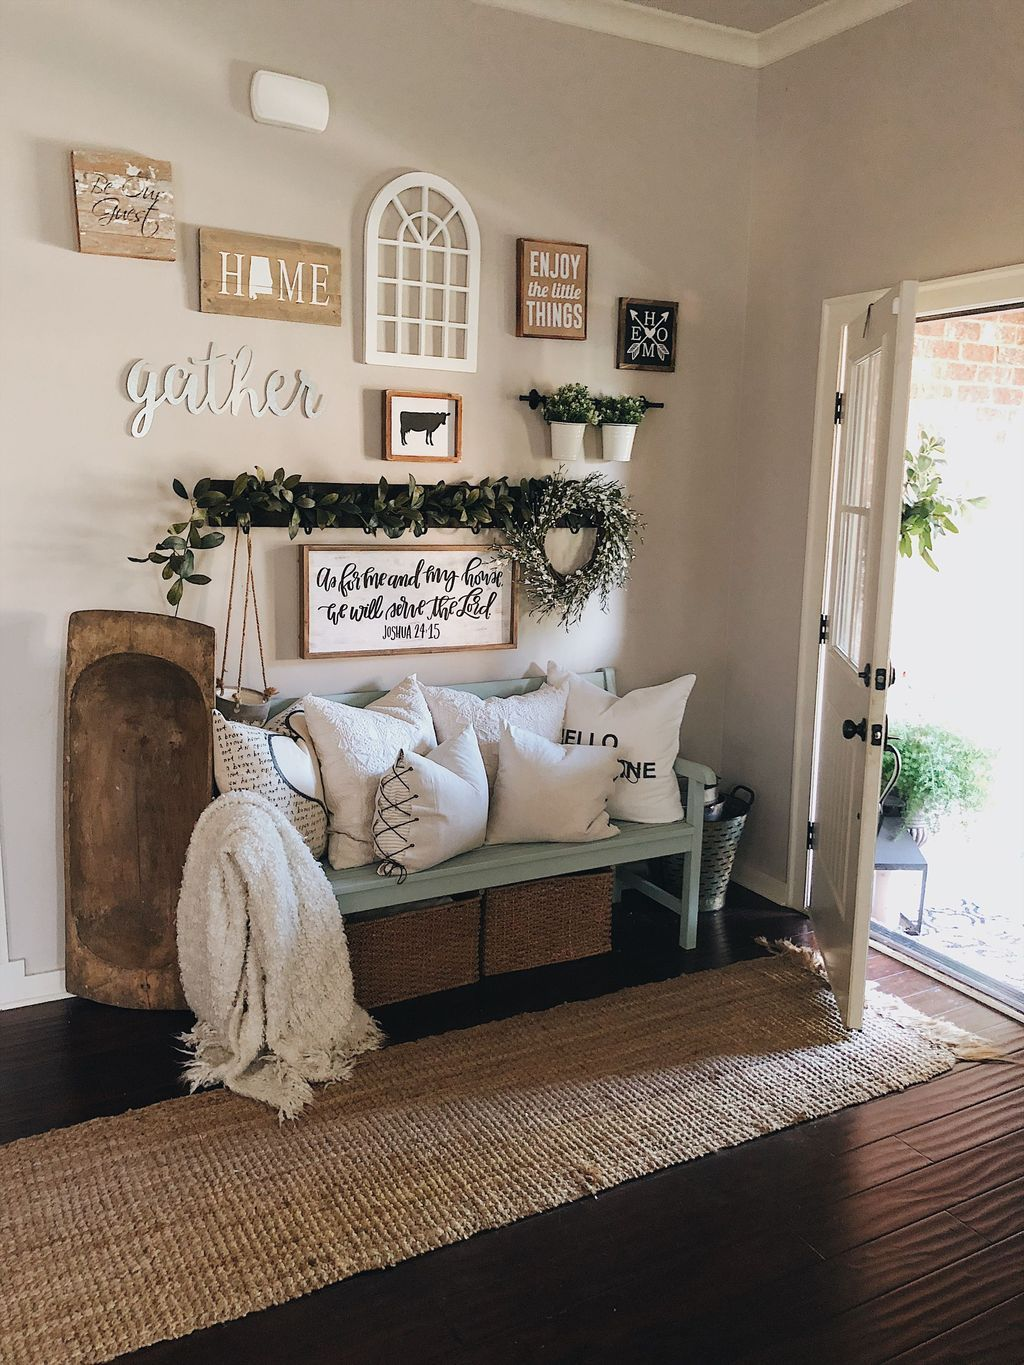 20 Perfect Summer Entryway Ideas To Welcoming Your Guests Trenduhome Farm House Living Room Home Decor Home